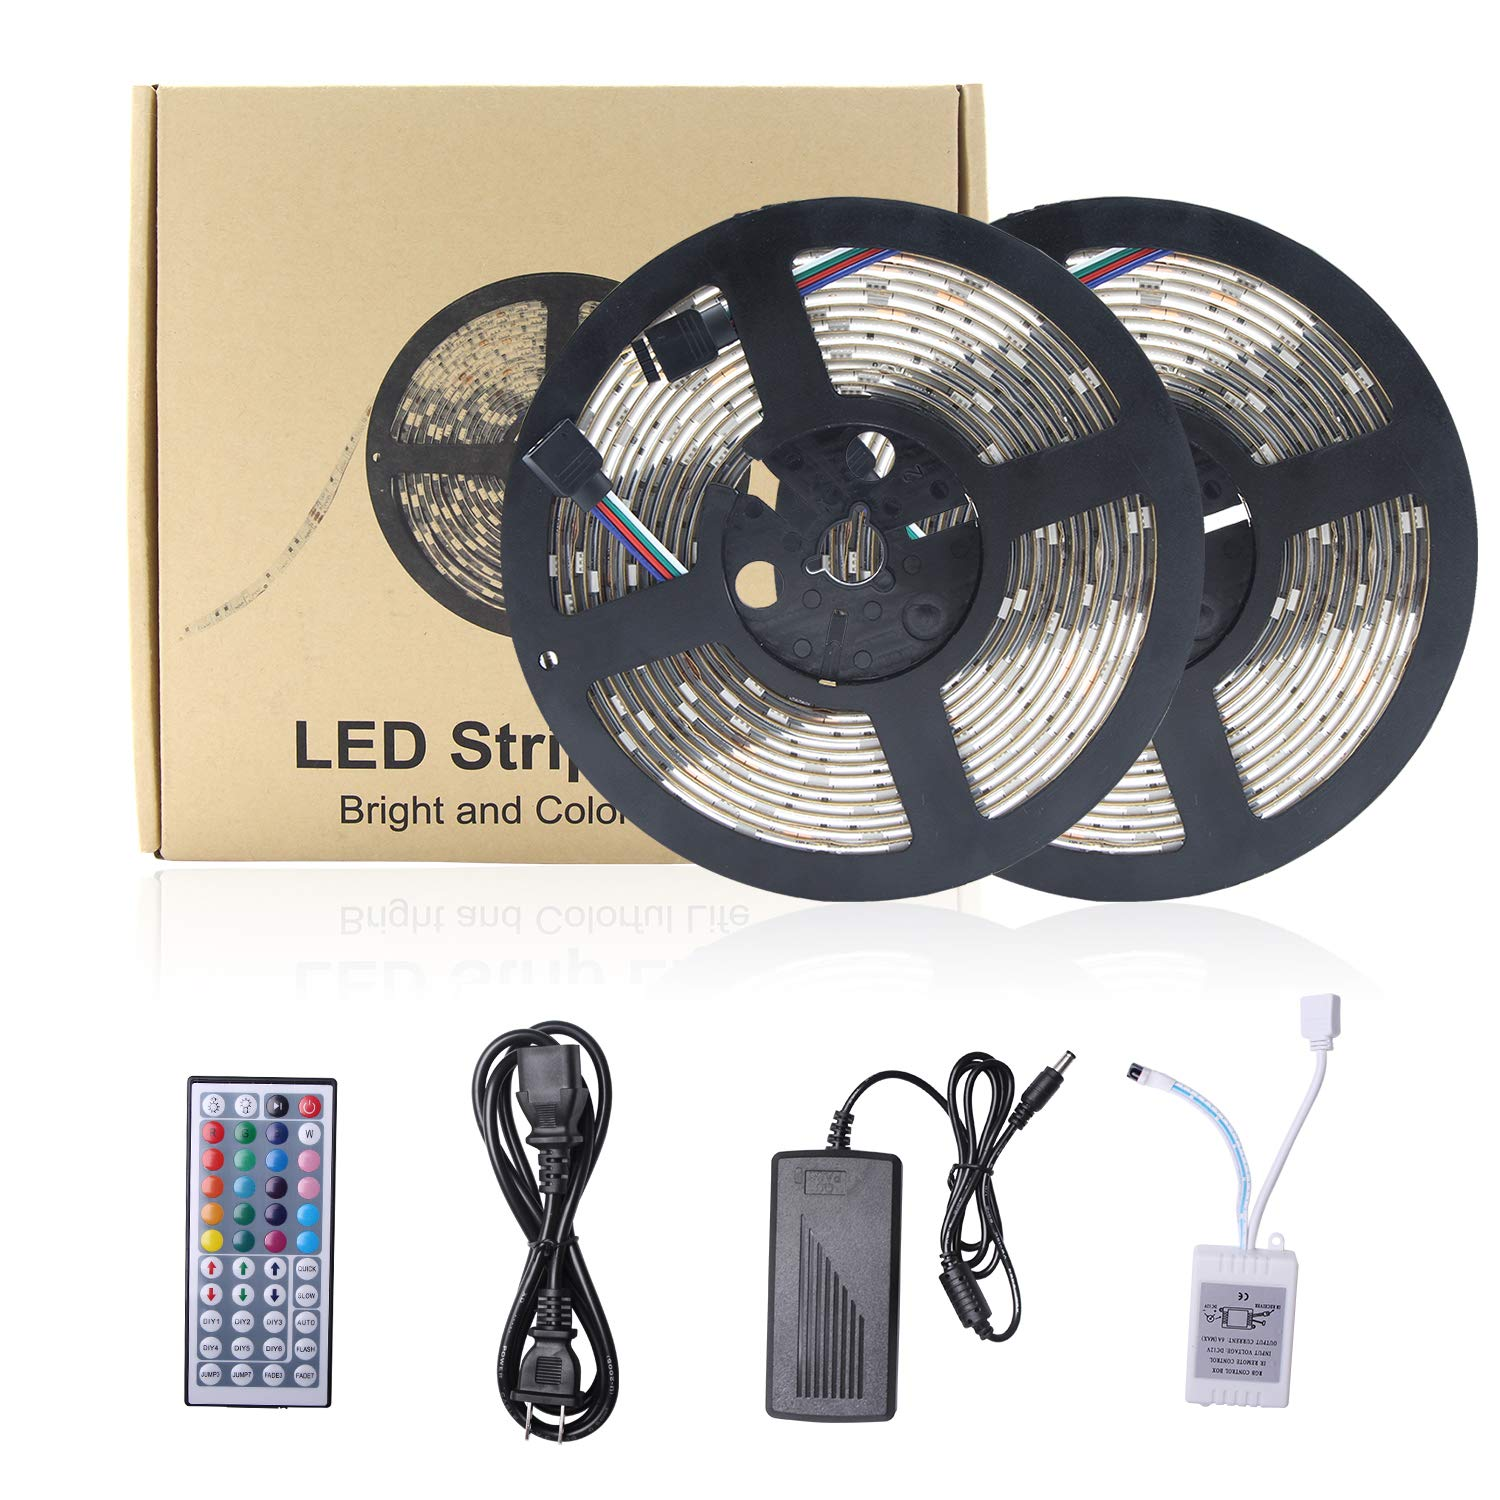 Relohas Led Strip Lights, 32.8ft(10M) Waterproof Flexible RGB Led Strip Light Kit,5050 SMD 300led with 44 IR Controller for Home Decor,Trucks,Pools,Parties and More by Relohas